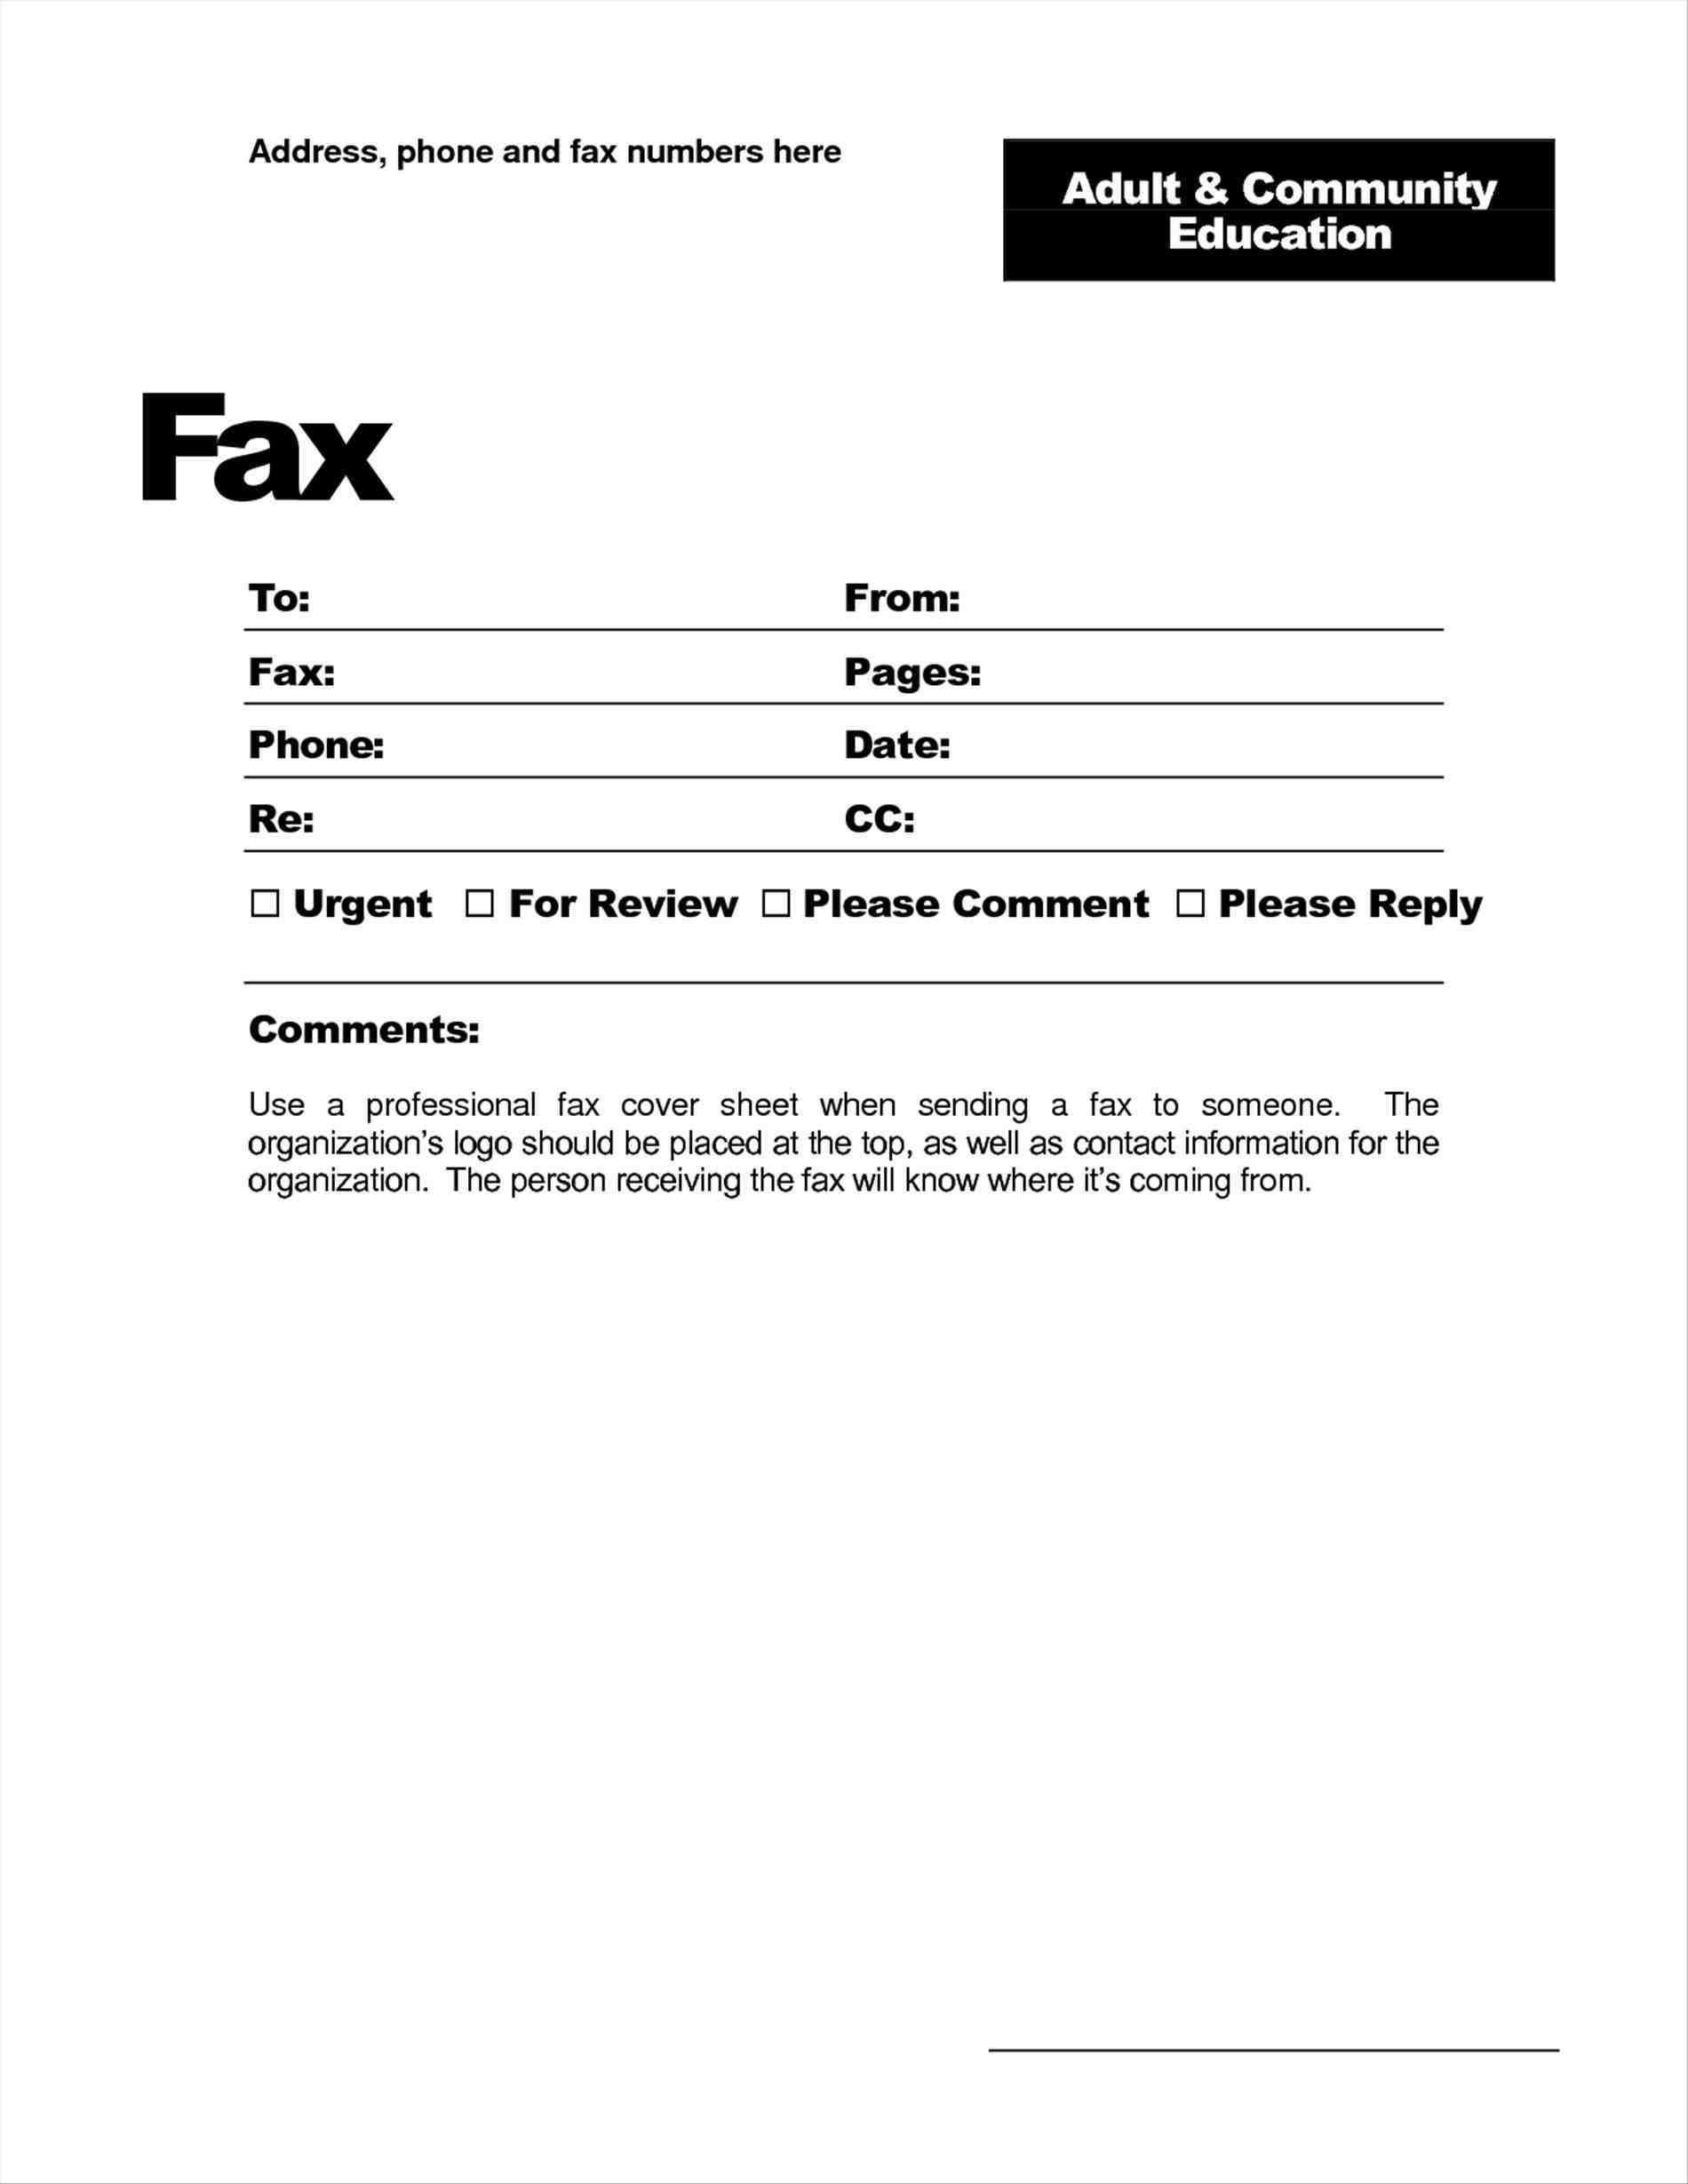 028 Basic Fax Cover Sheet Template Free Printable Example Throughout Fax Cover Sheet Template Word 2010